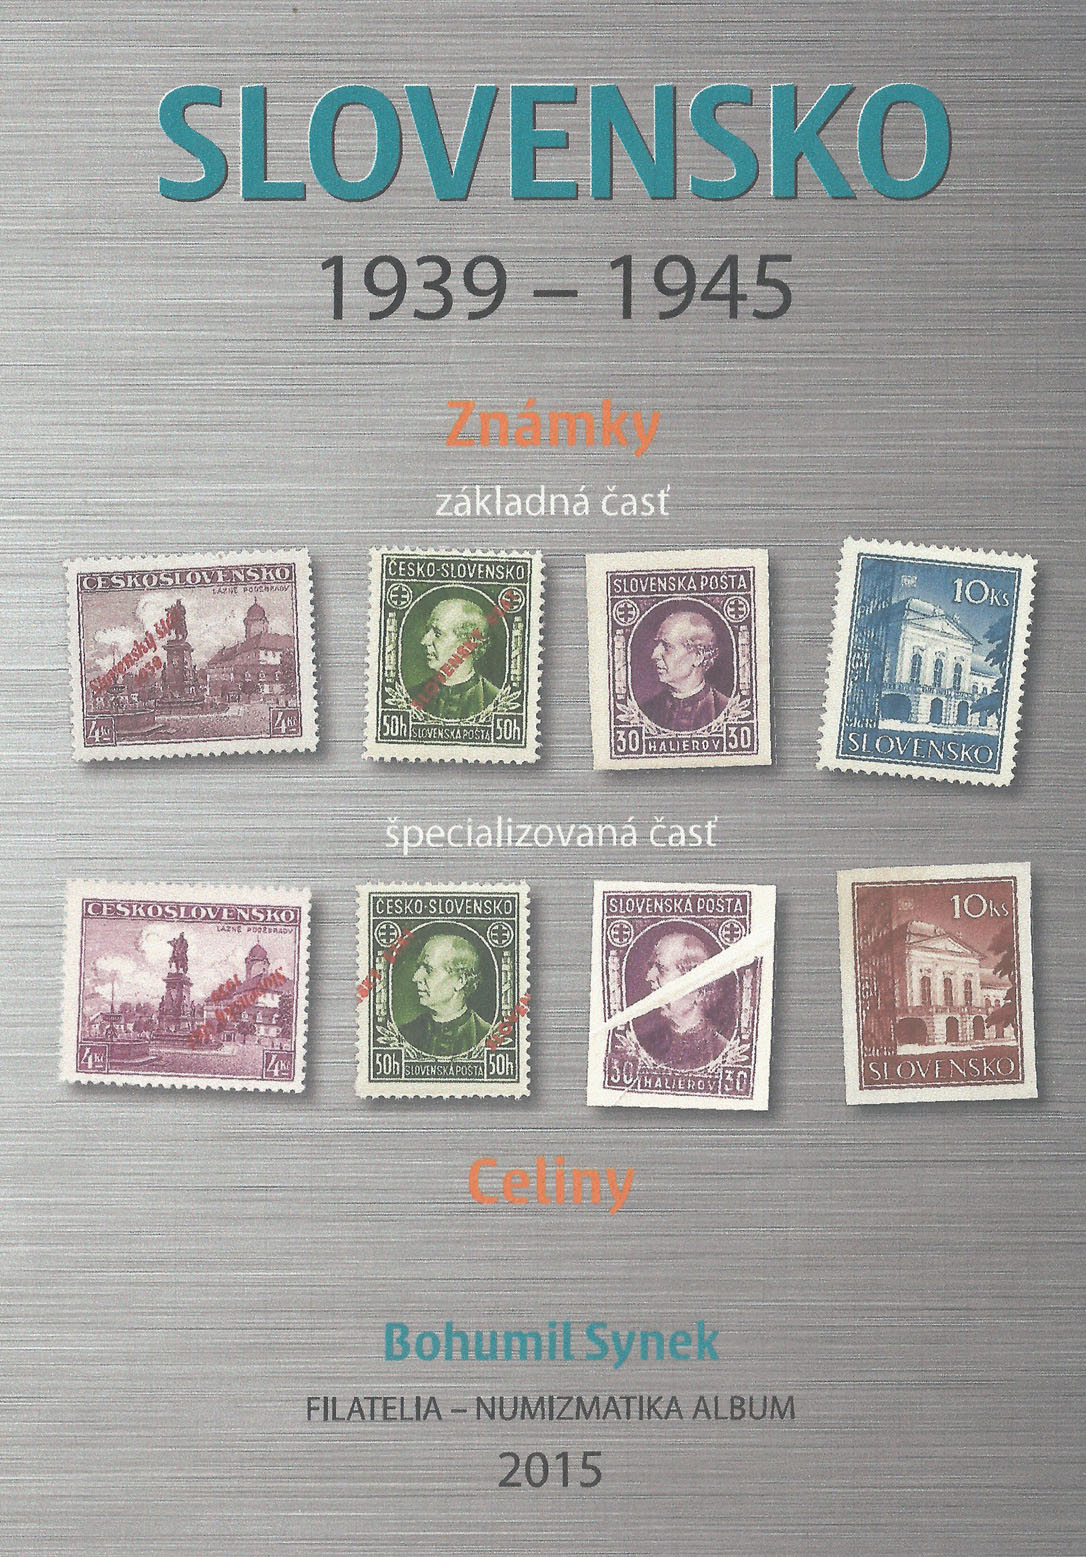 Philatelic literature Bohumil Synek: SLOVENSKO 1939 - 1945 - Zn�mky a celiny (SLOVAKIA 1939 - 1945 - Stamps and Stationeries) (book review)